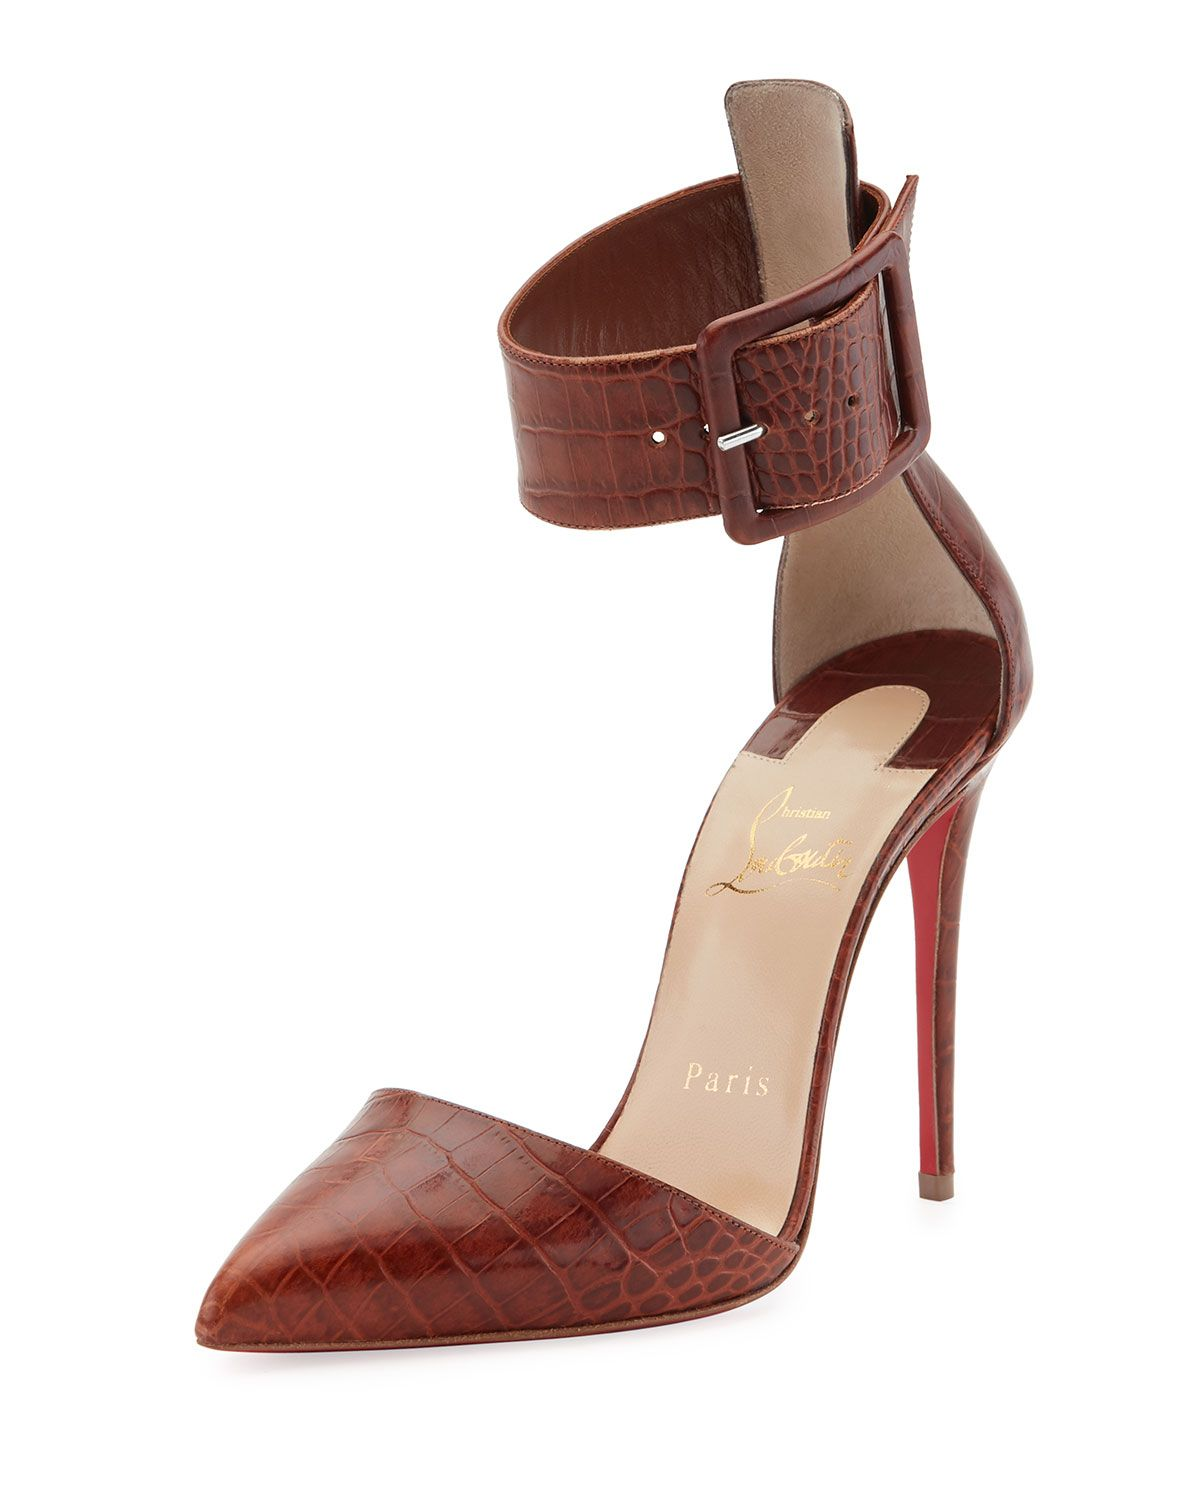 f8c6336d6be Christian Louboutin Harler Snake-Embossed Leather Red Sole Pump ...